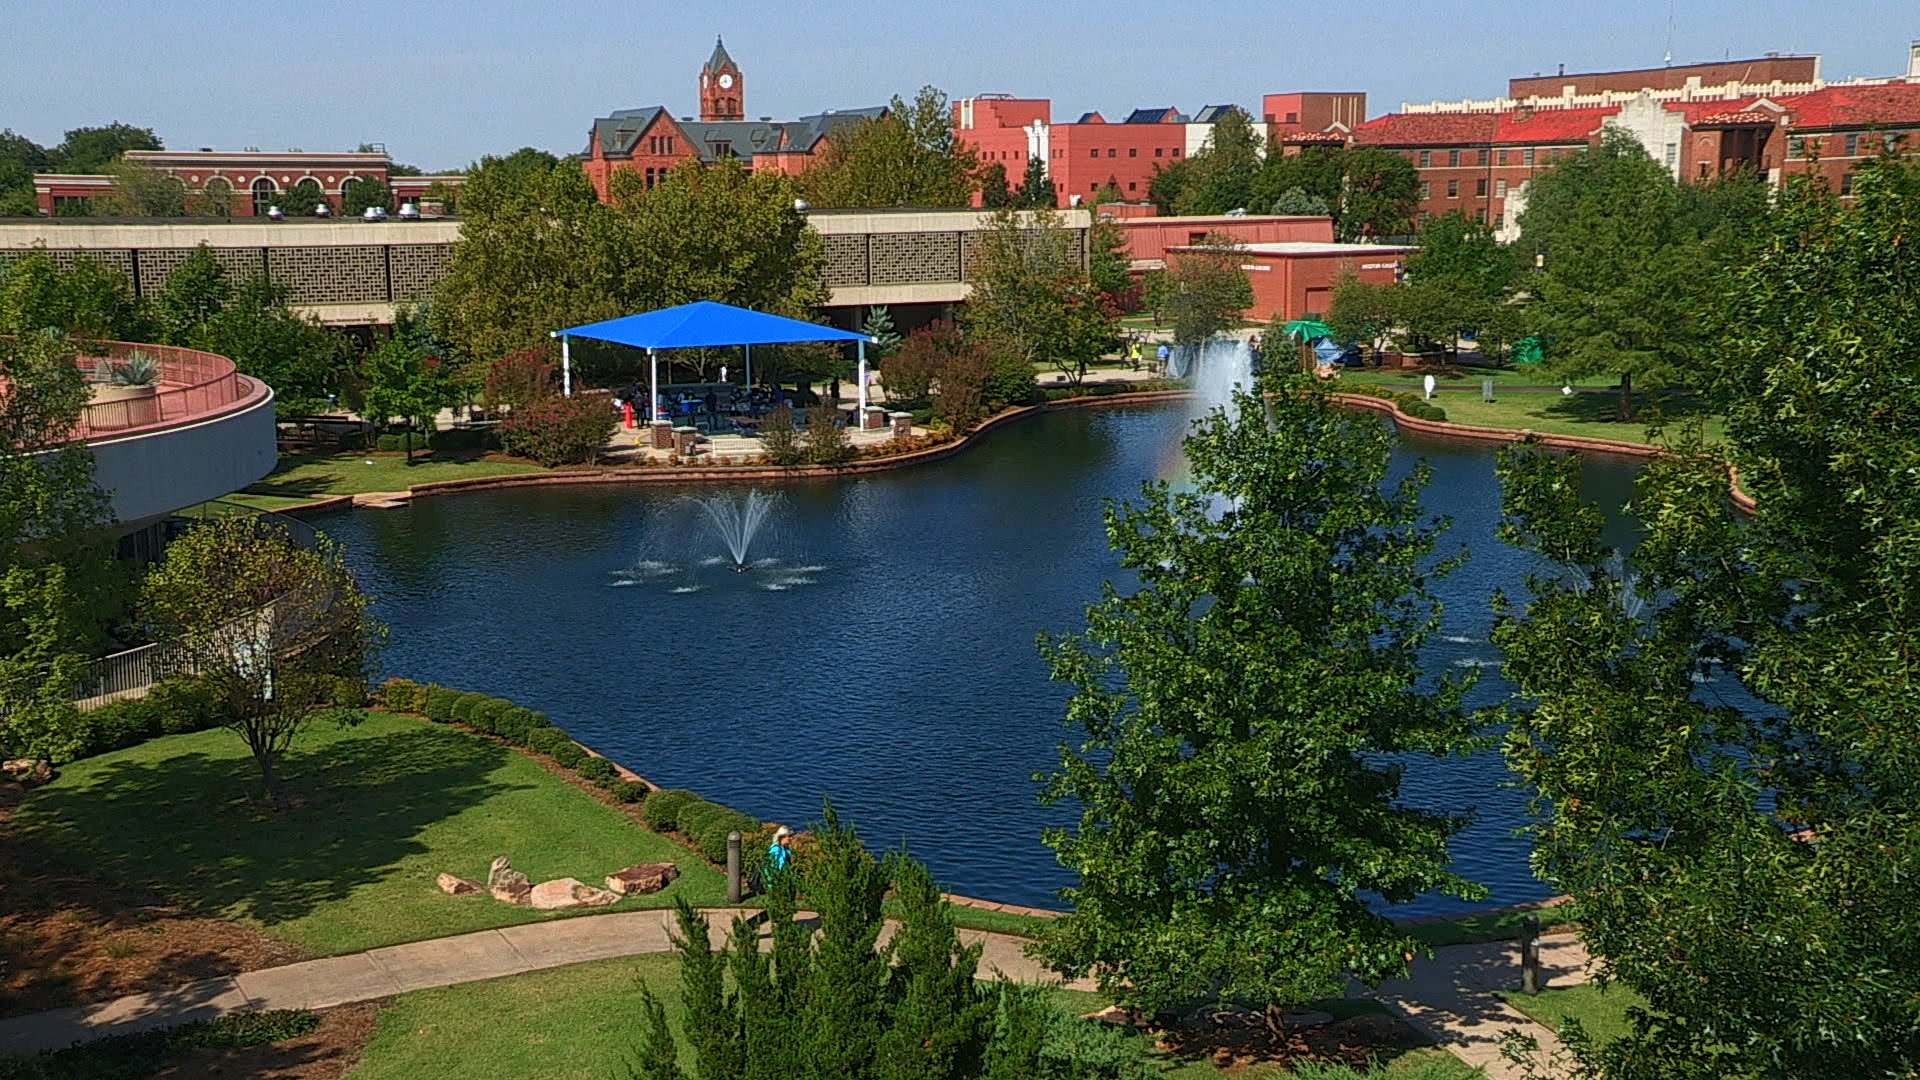 University of Central Oklahoma On-Call MEP Services Contract